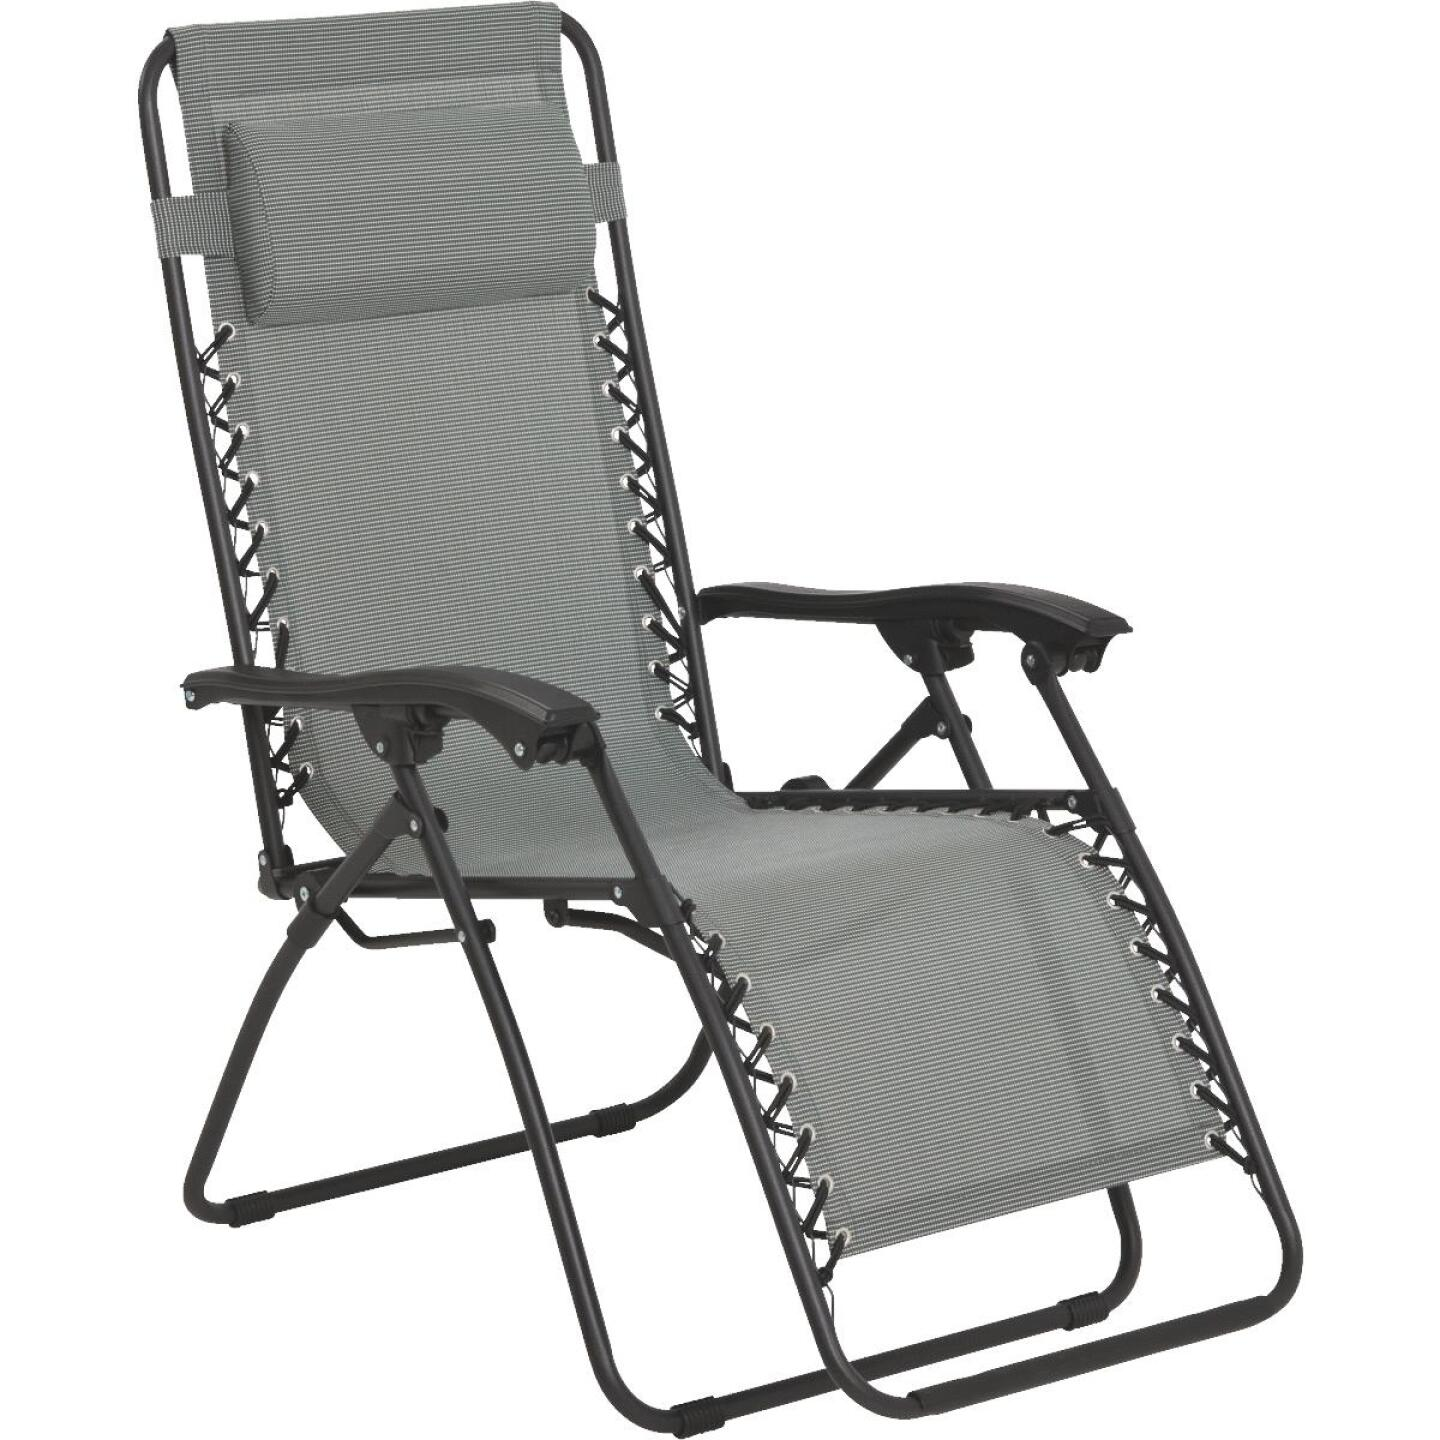 Outdoor Expressions Seville Gray Convertible Lounge Chair Image 1